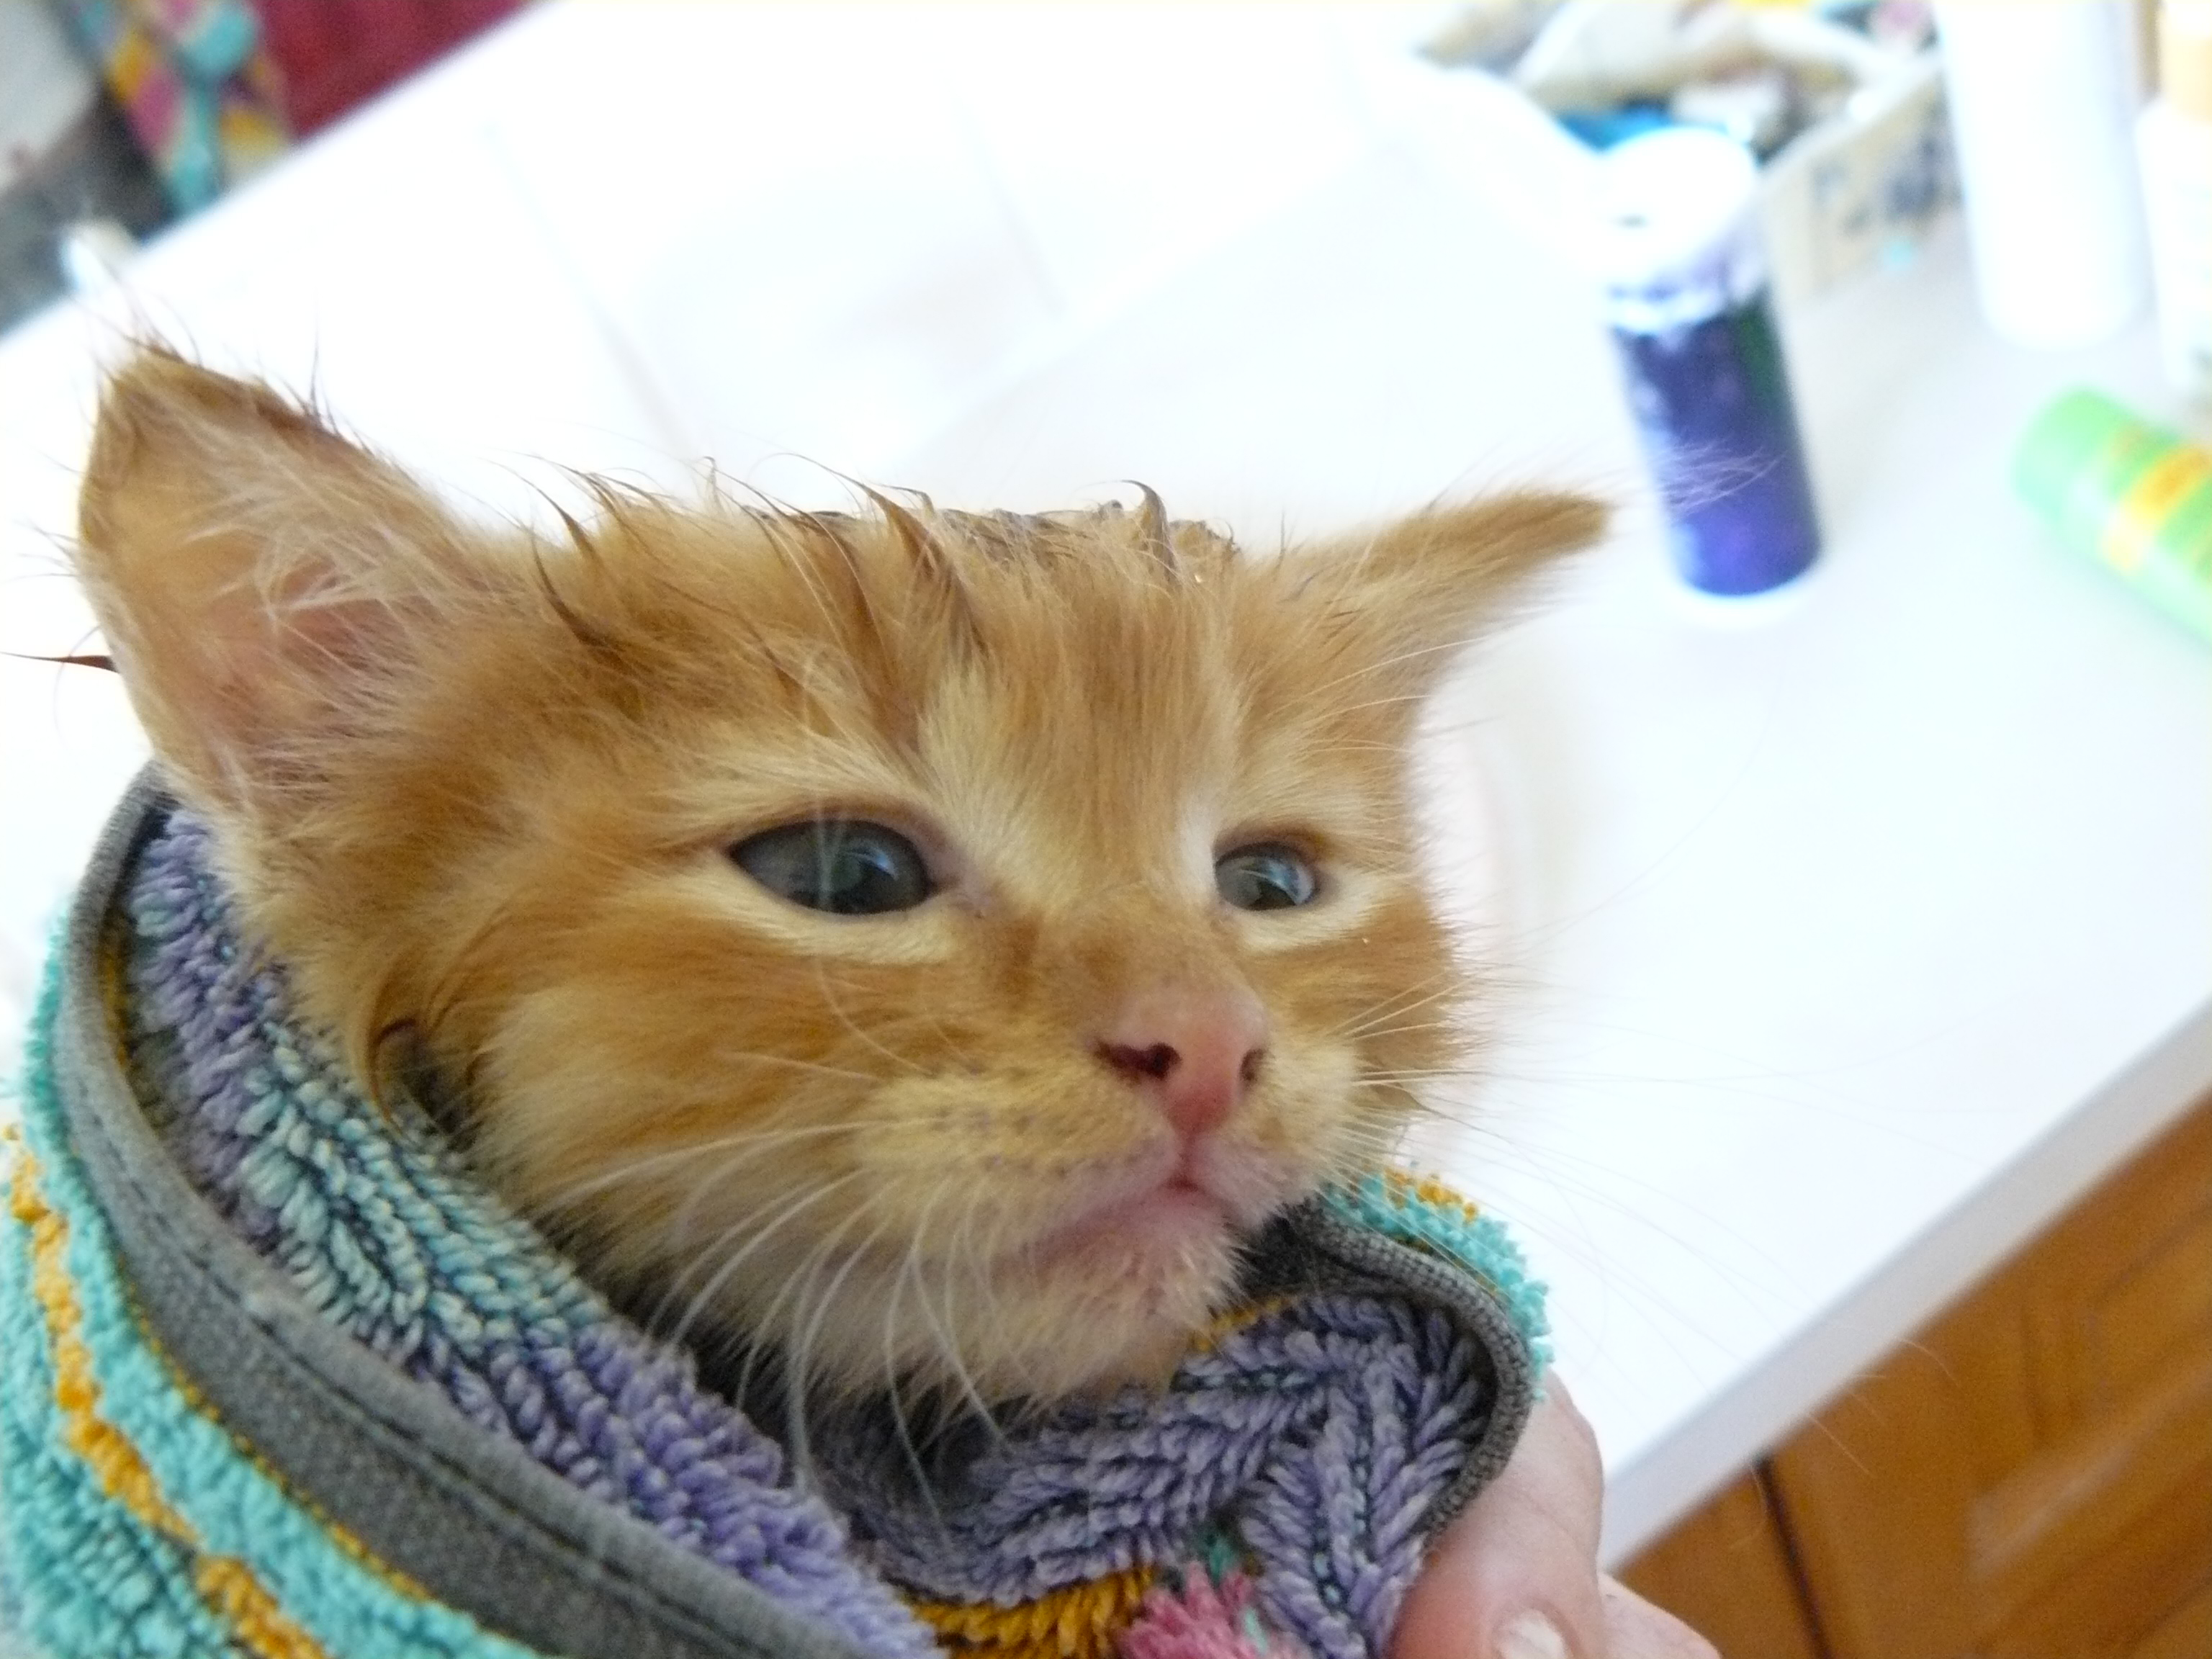 Ginge after his bath